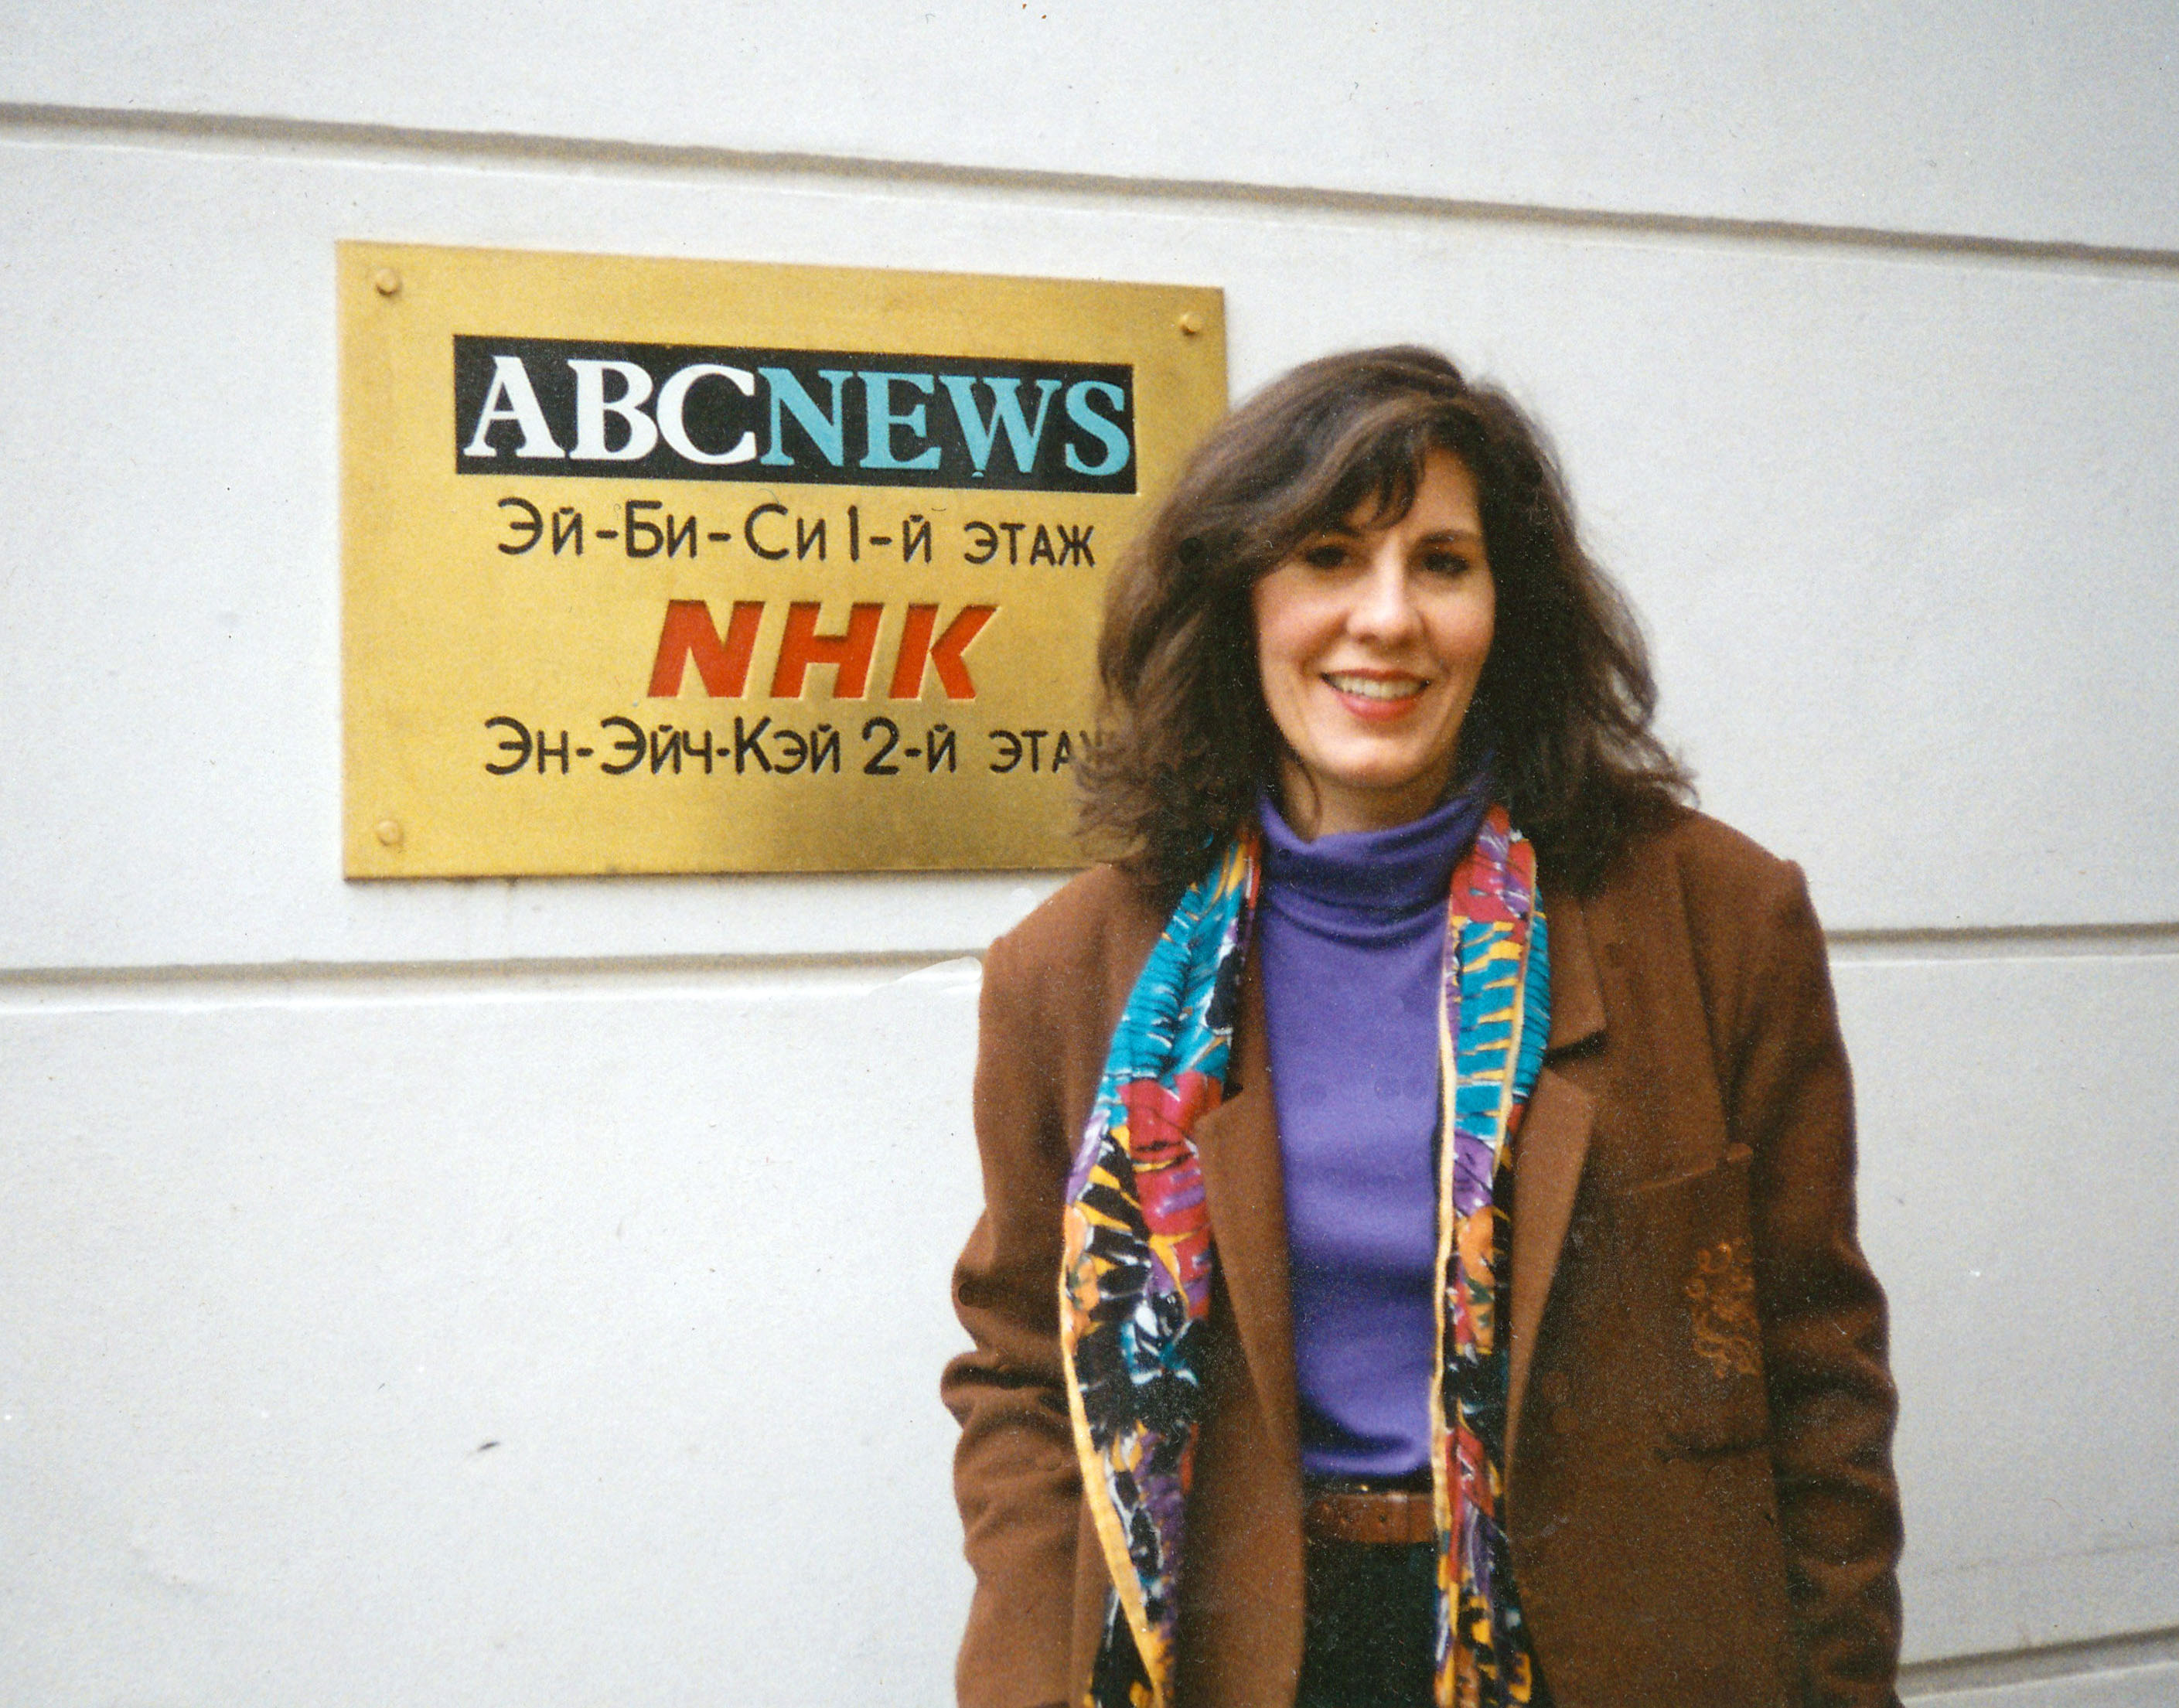 -15 degrees at our ABC News Moscow bureau, but who cares? My favorite workplace on the planet. (Moscow, Russia 1993-94)